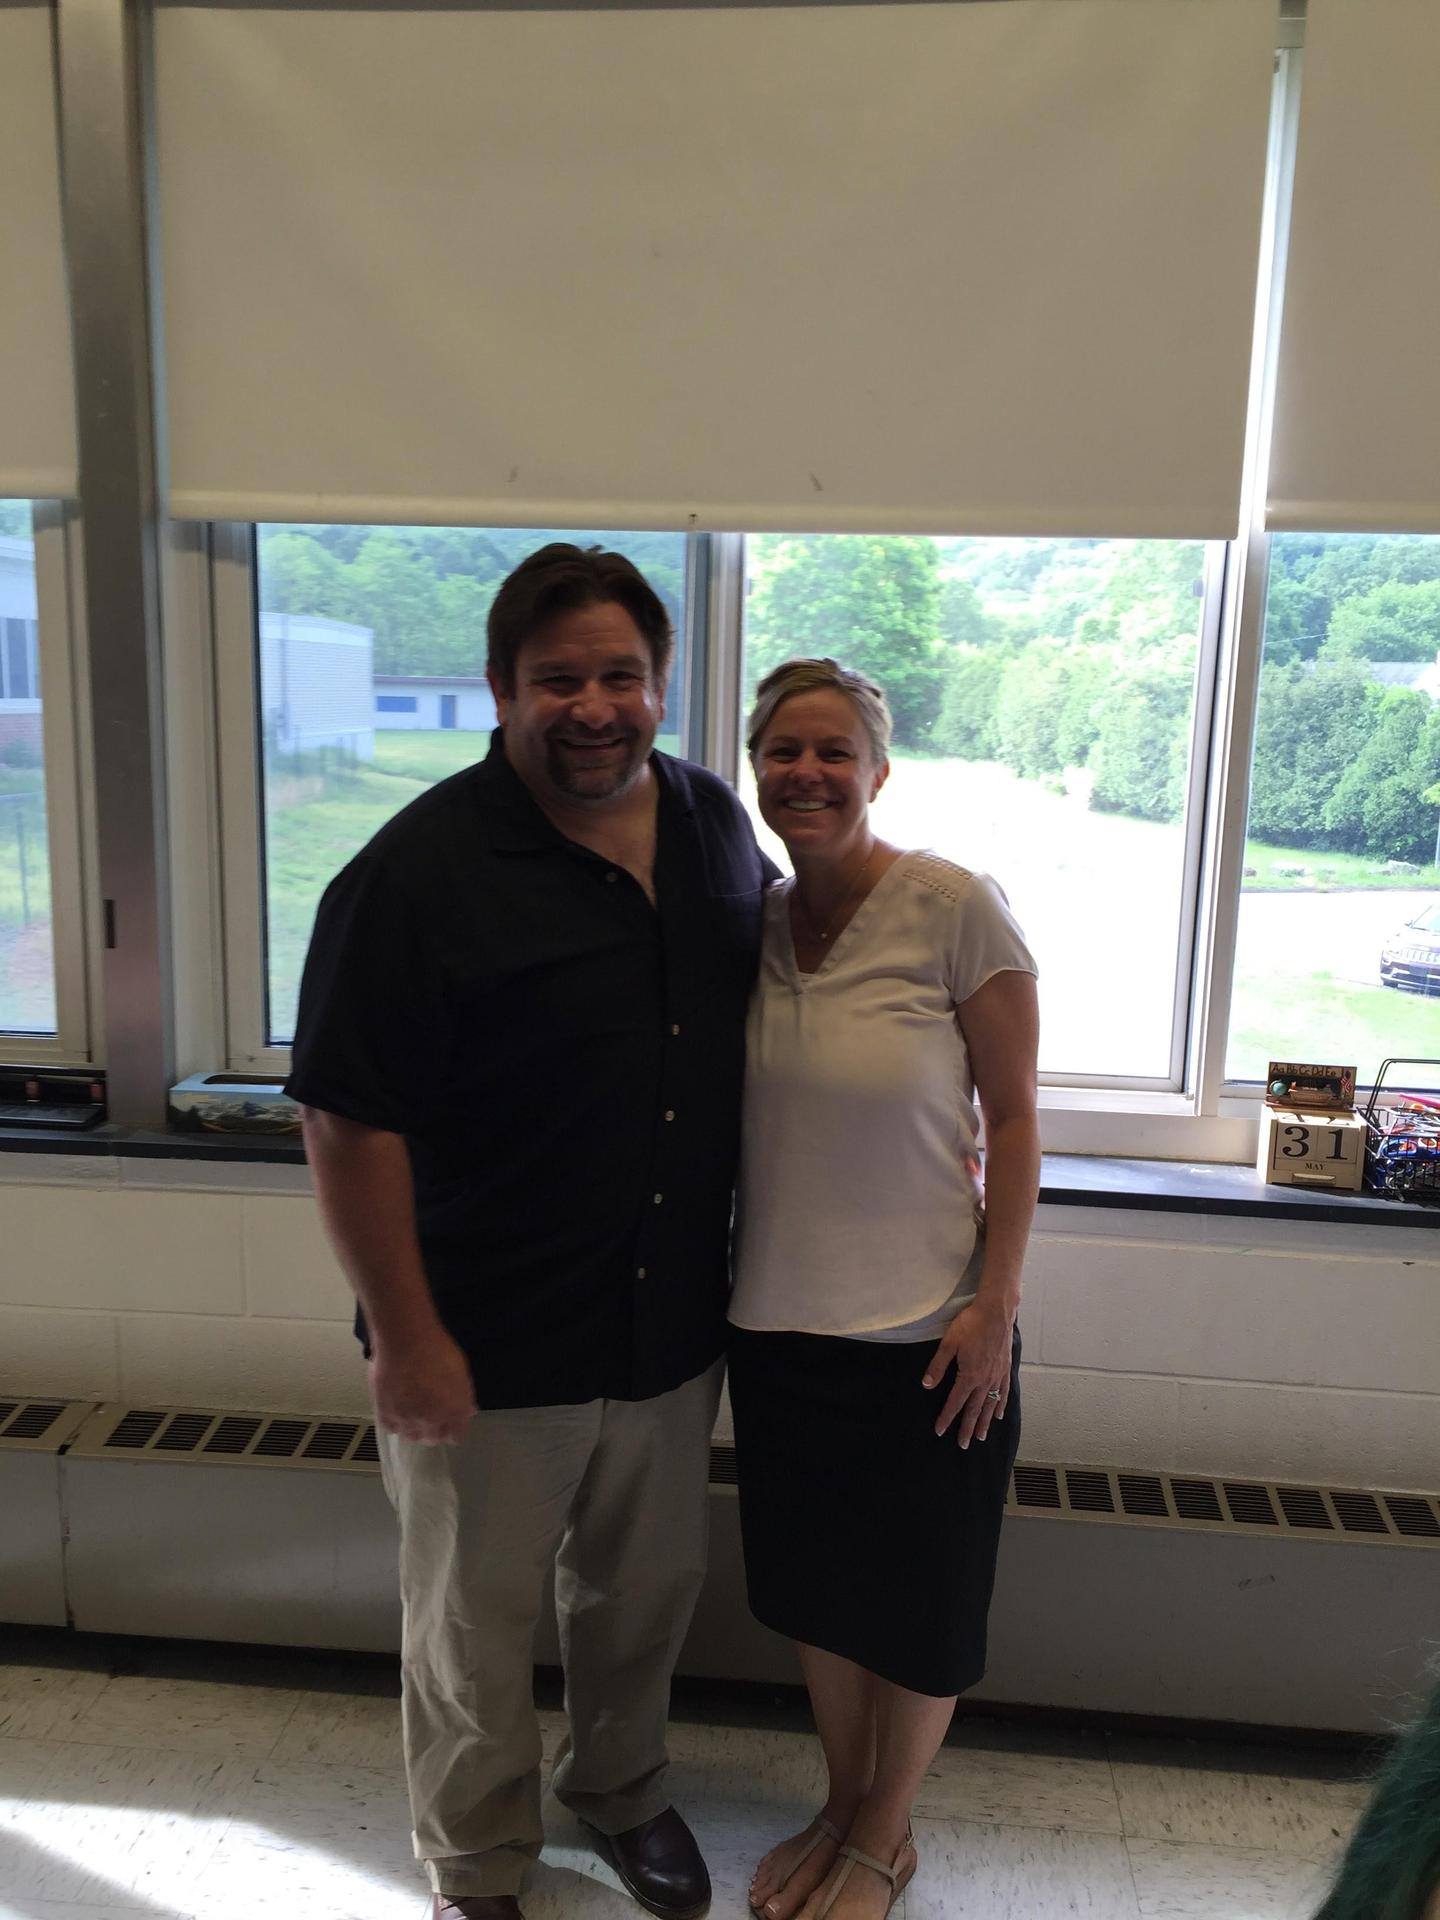 Mr. Marenghi and Mrs. Pompei